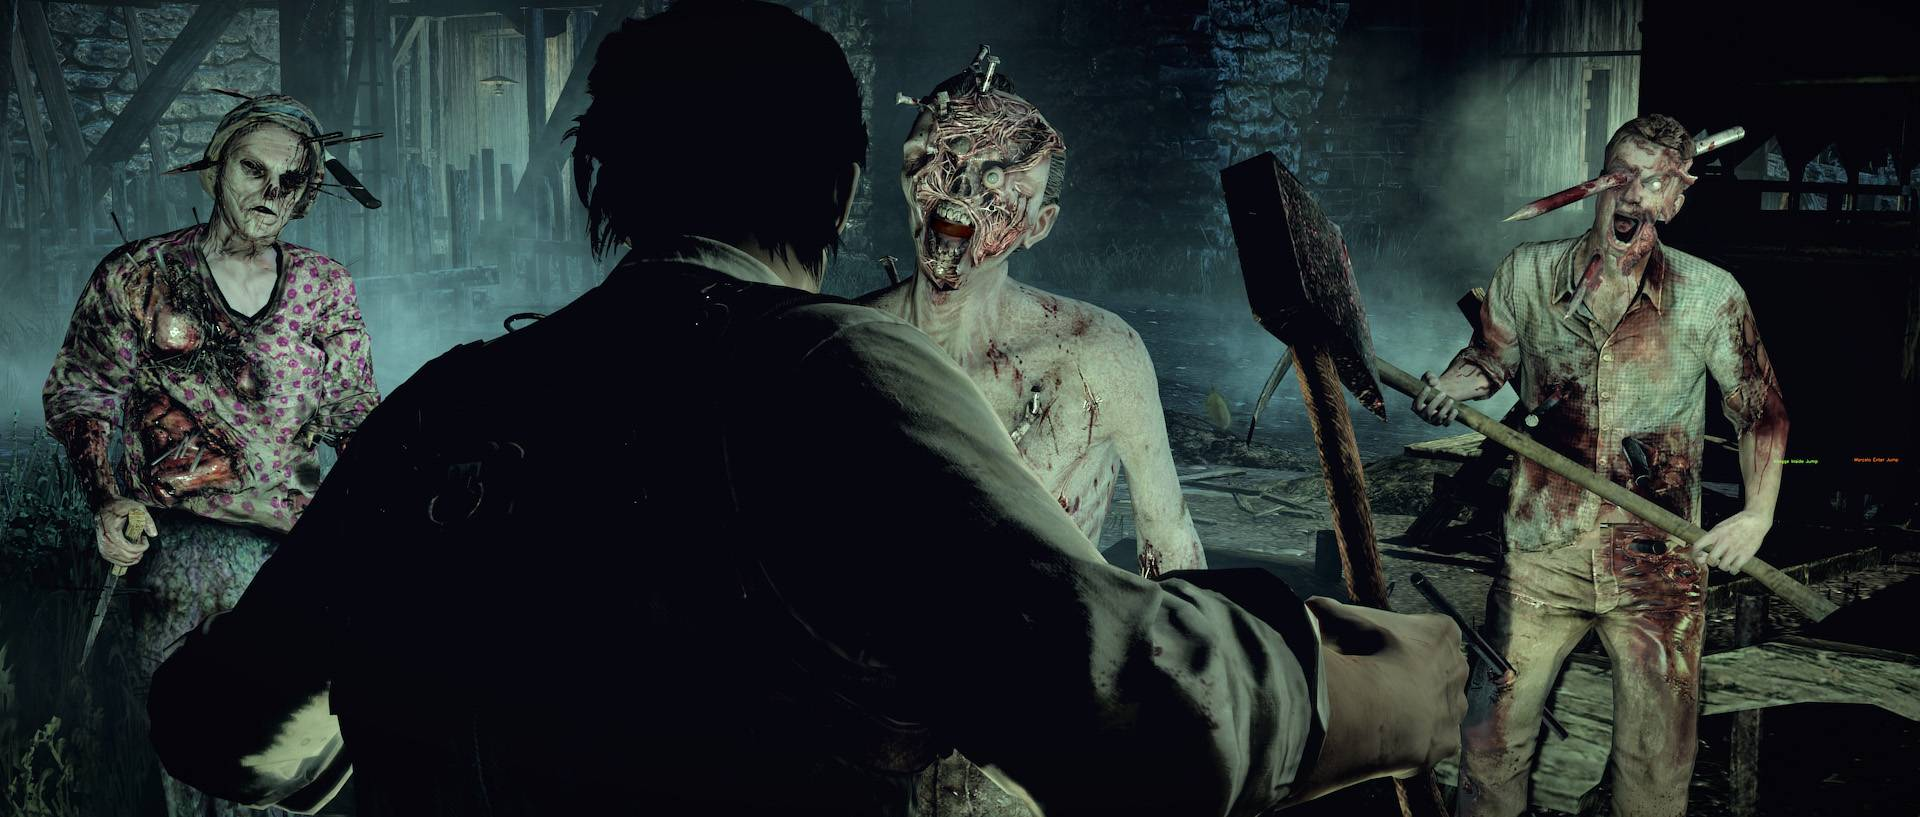 """The Evil Within"" has a retro appeal to it."